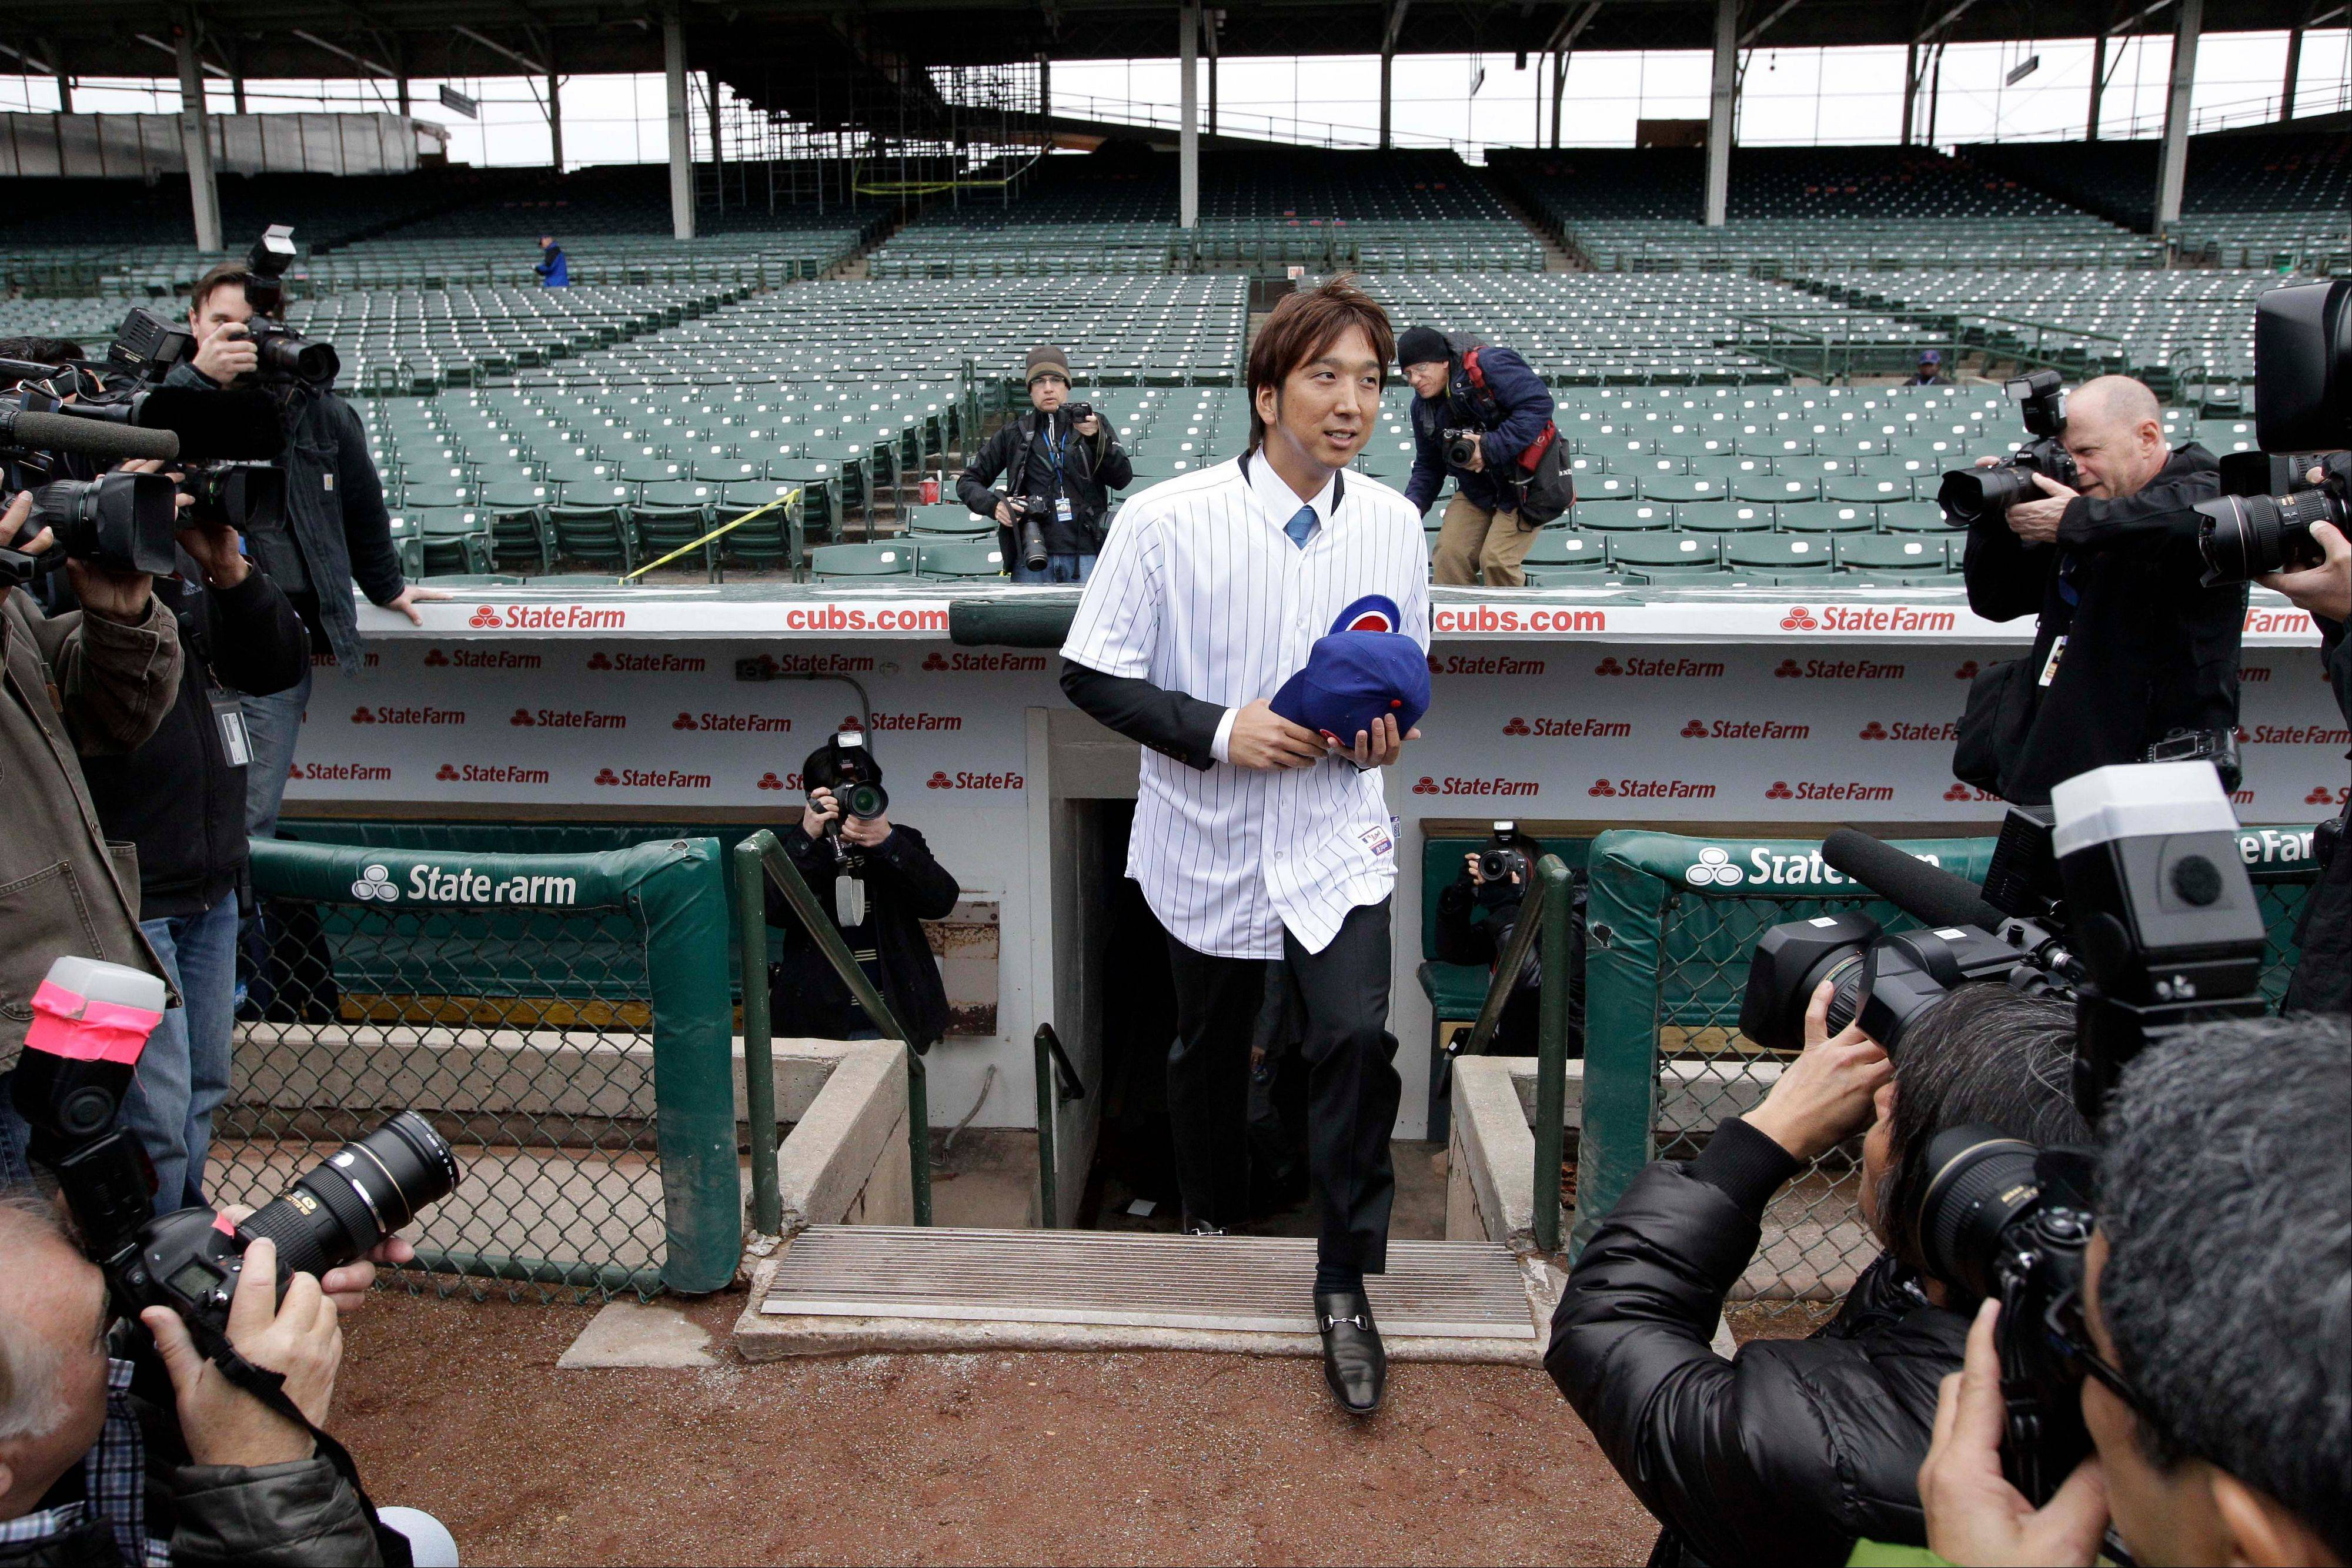 Cubs pitcher Kyuji Fujikawa steps take a look at Wrigley Field Friday after signing a $9.5 million contract with the Cubs.